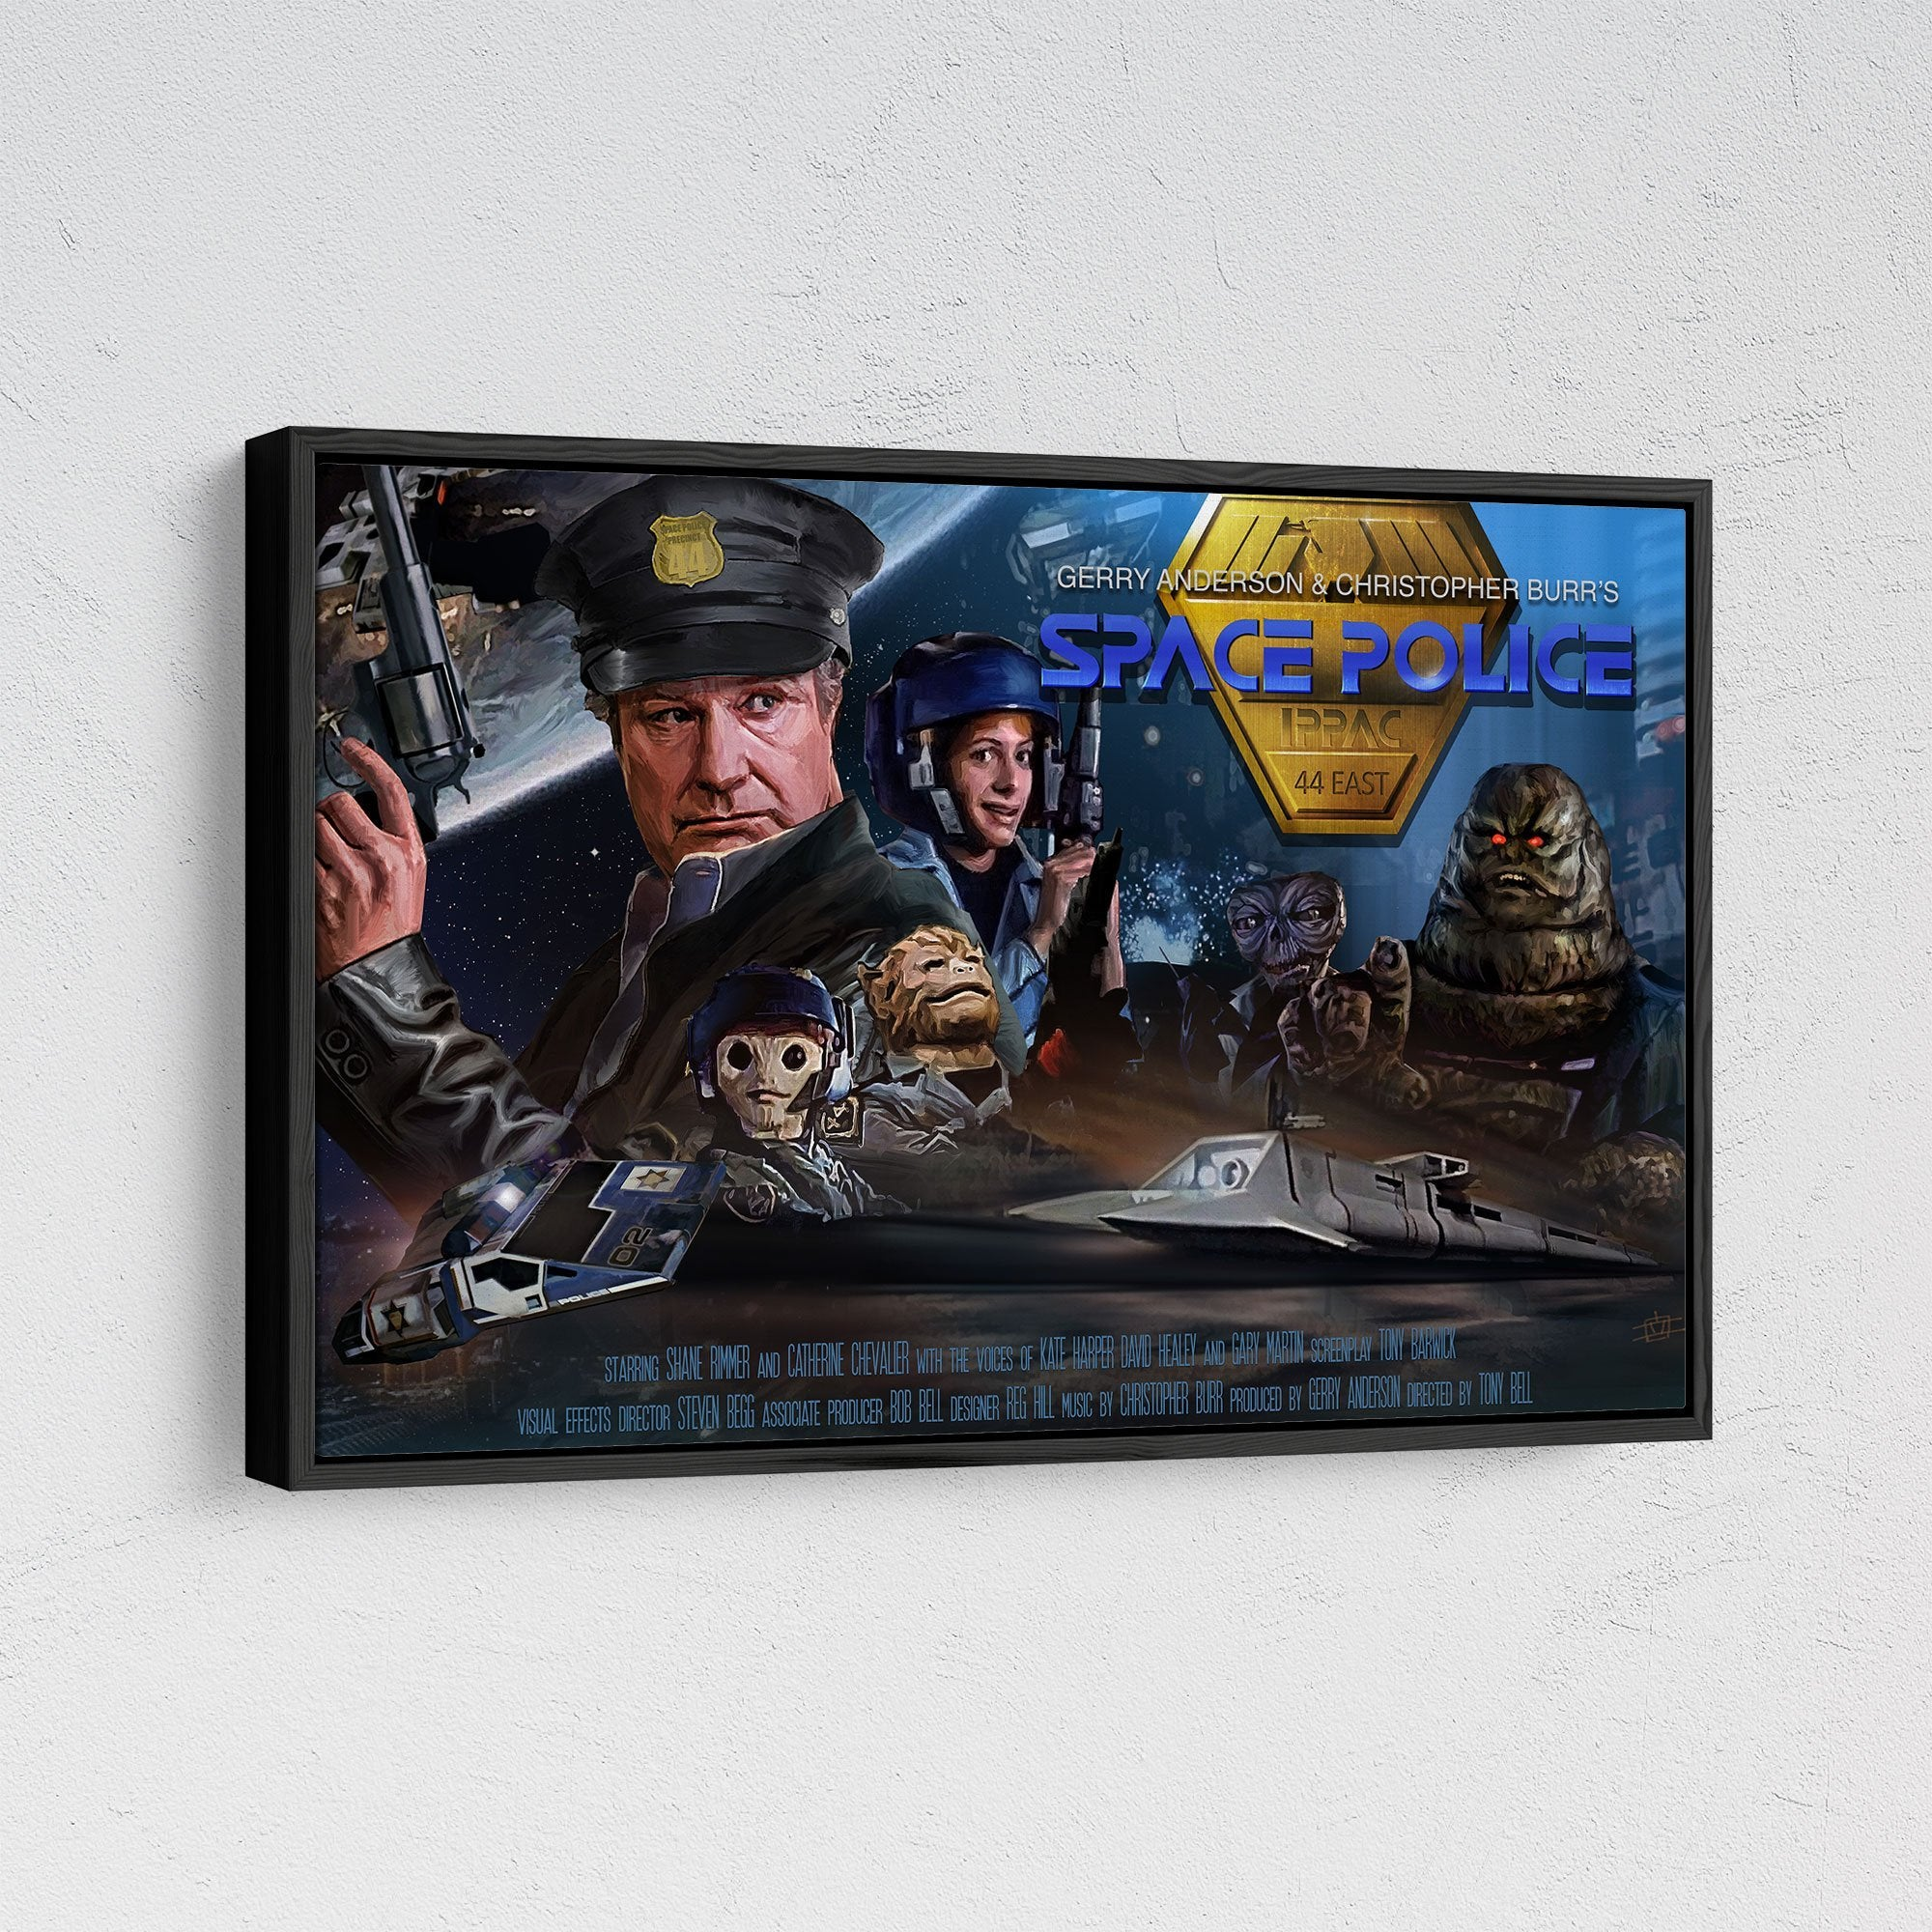 Space Police Framed Canvas Print [Official and Exclusive] - The Gerry Anderson Store